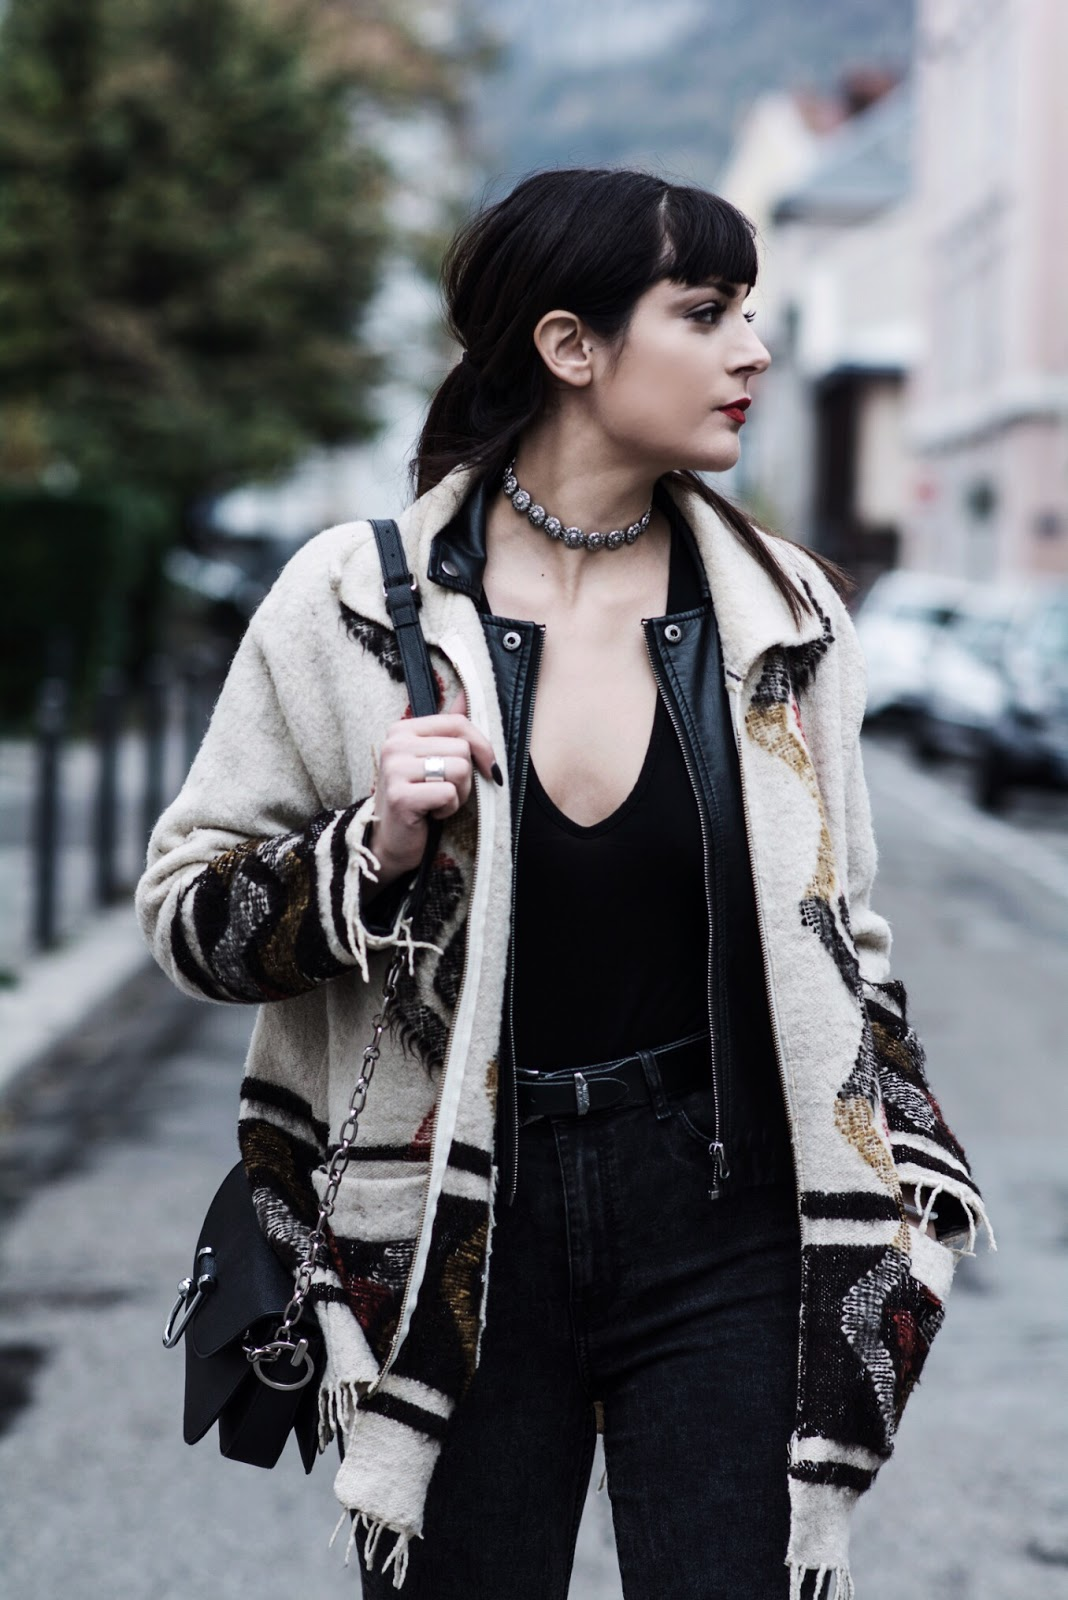 blogger france, mode, fille rock, style rock, style vintage, style retro, style glamour, bons plans shopping, blogueuse mode, style grunge